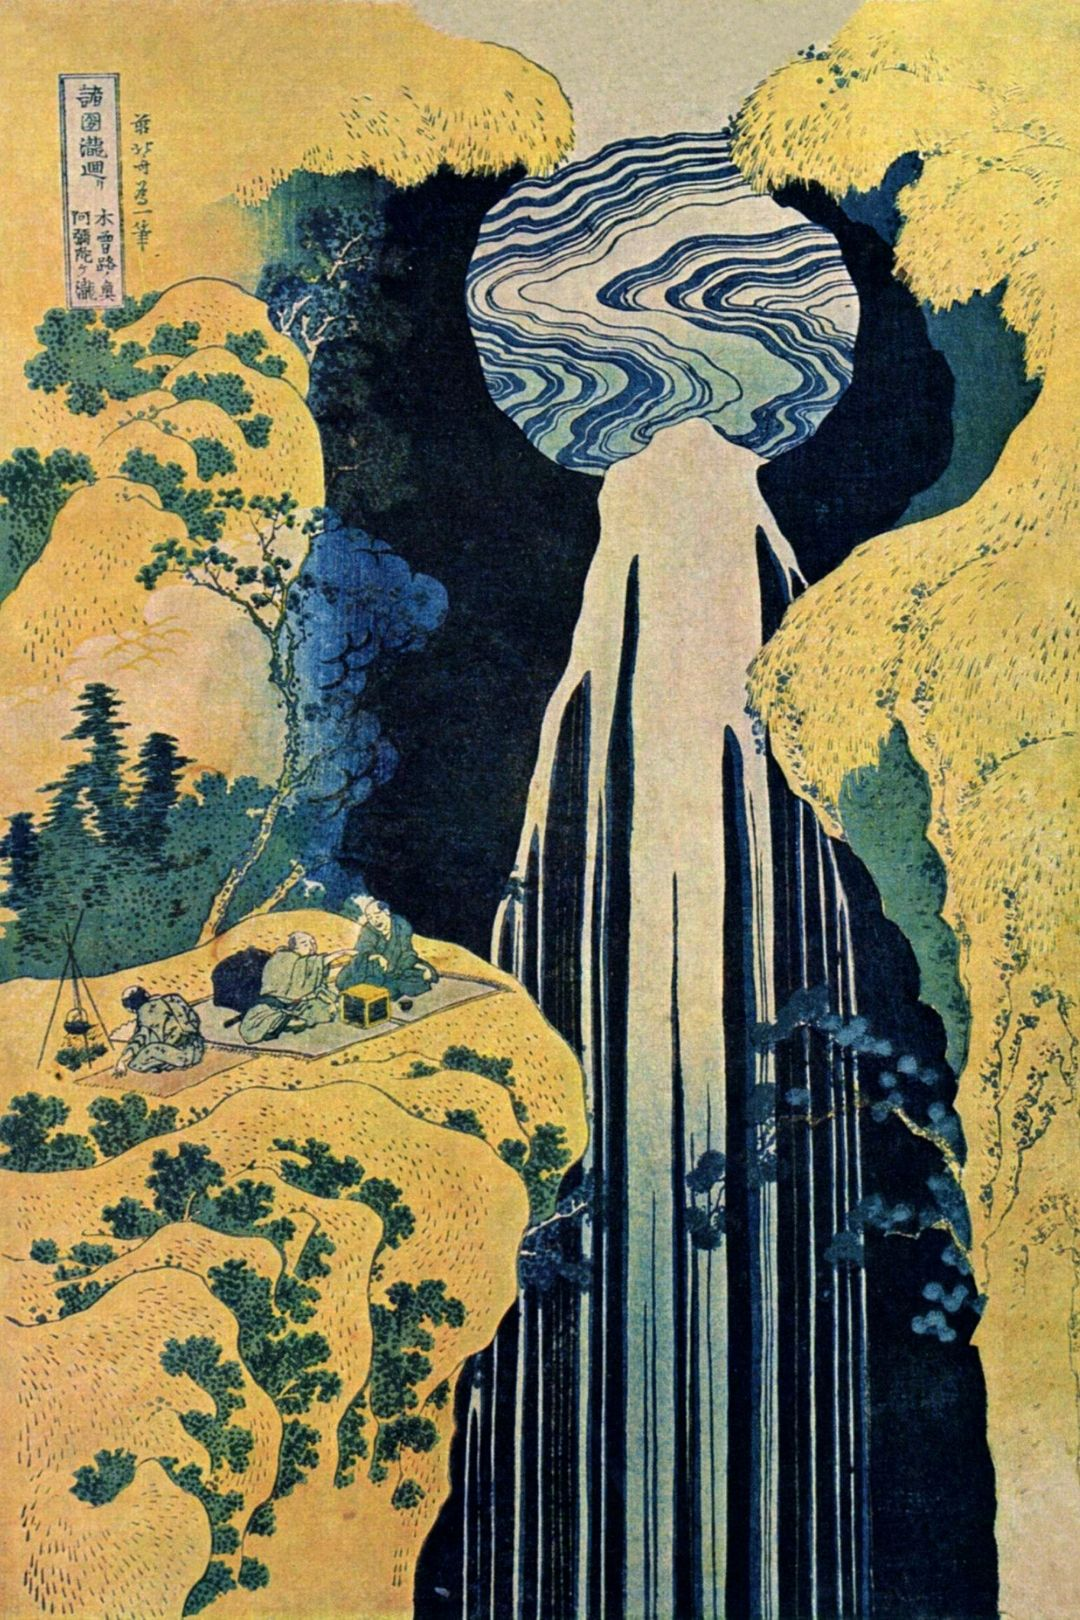 The Amida Falls in the Far Reaches of the Kisokaido Road (1834) - By Hokusai